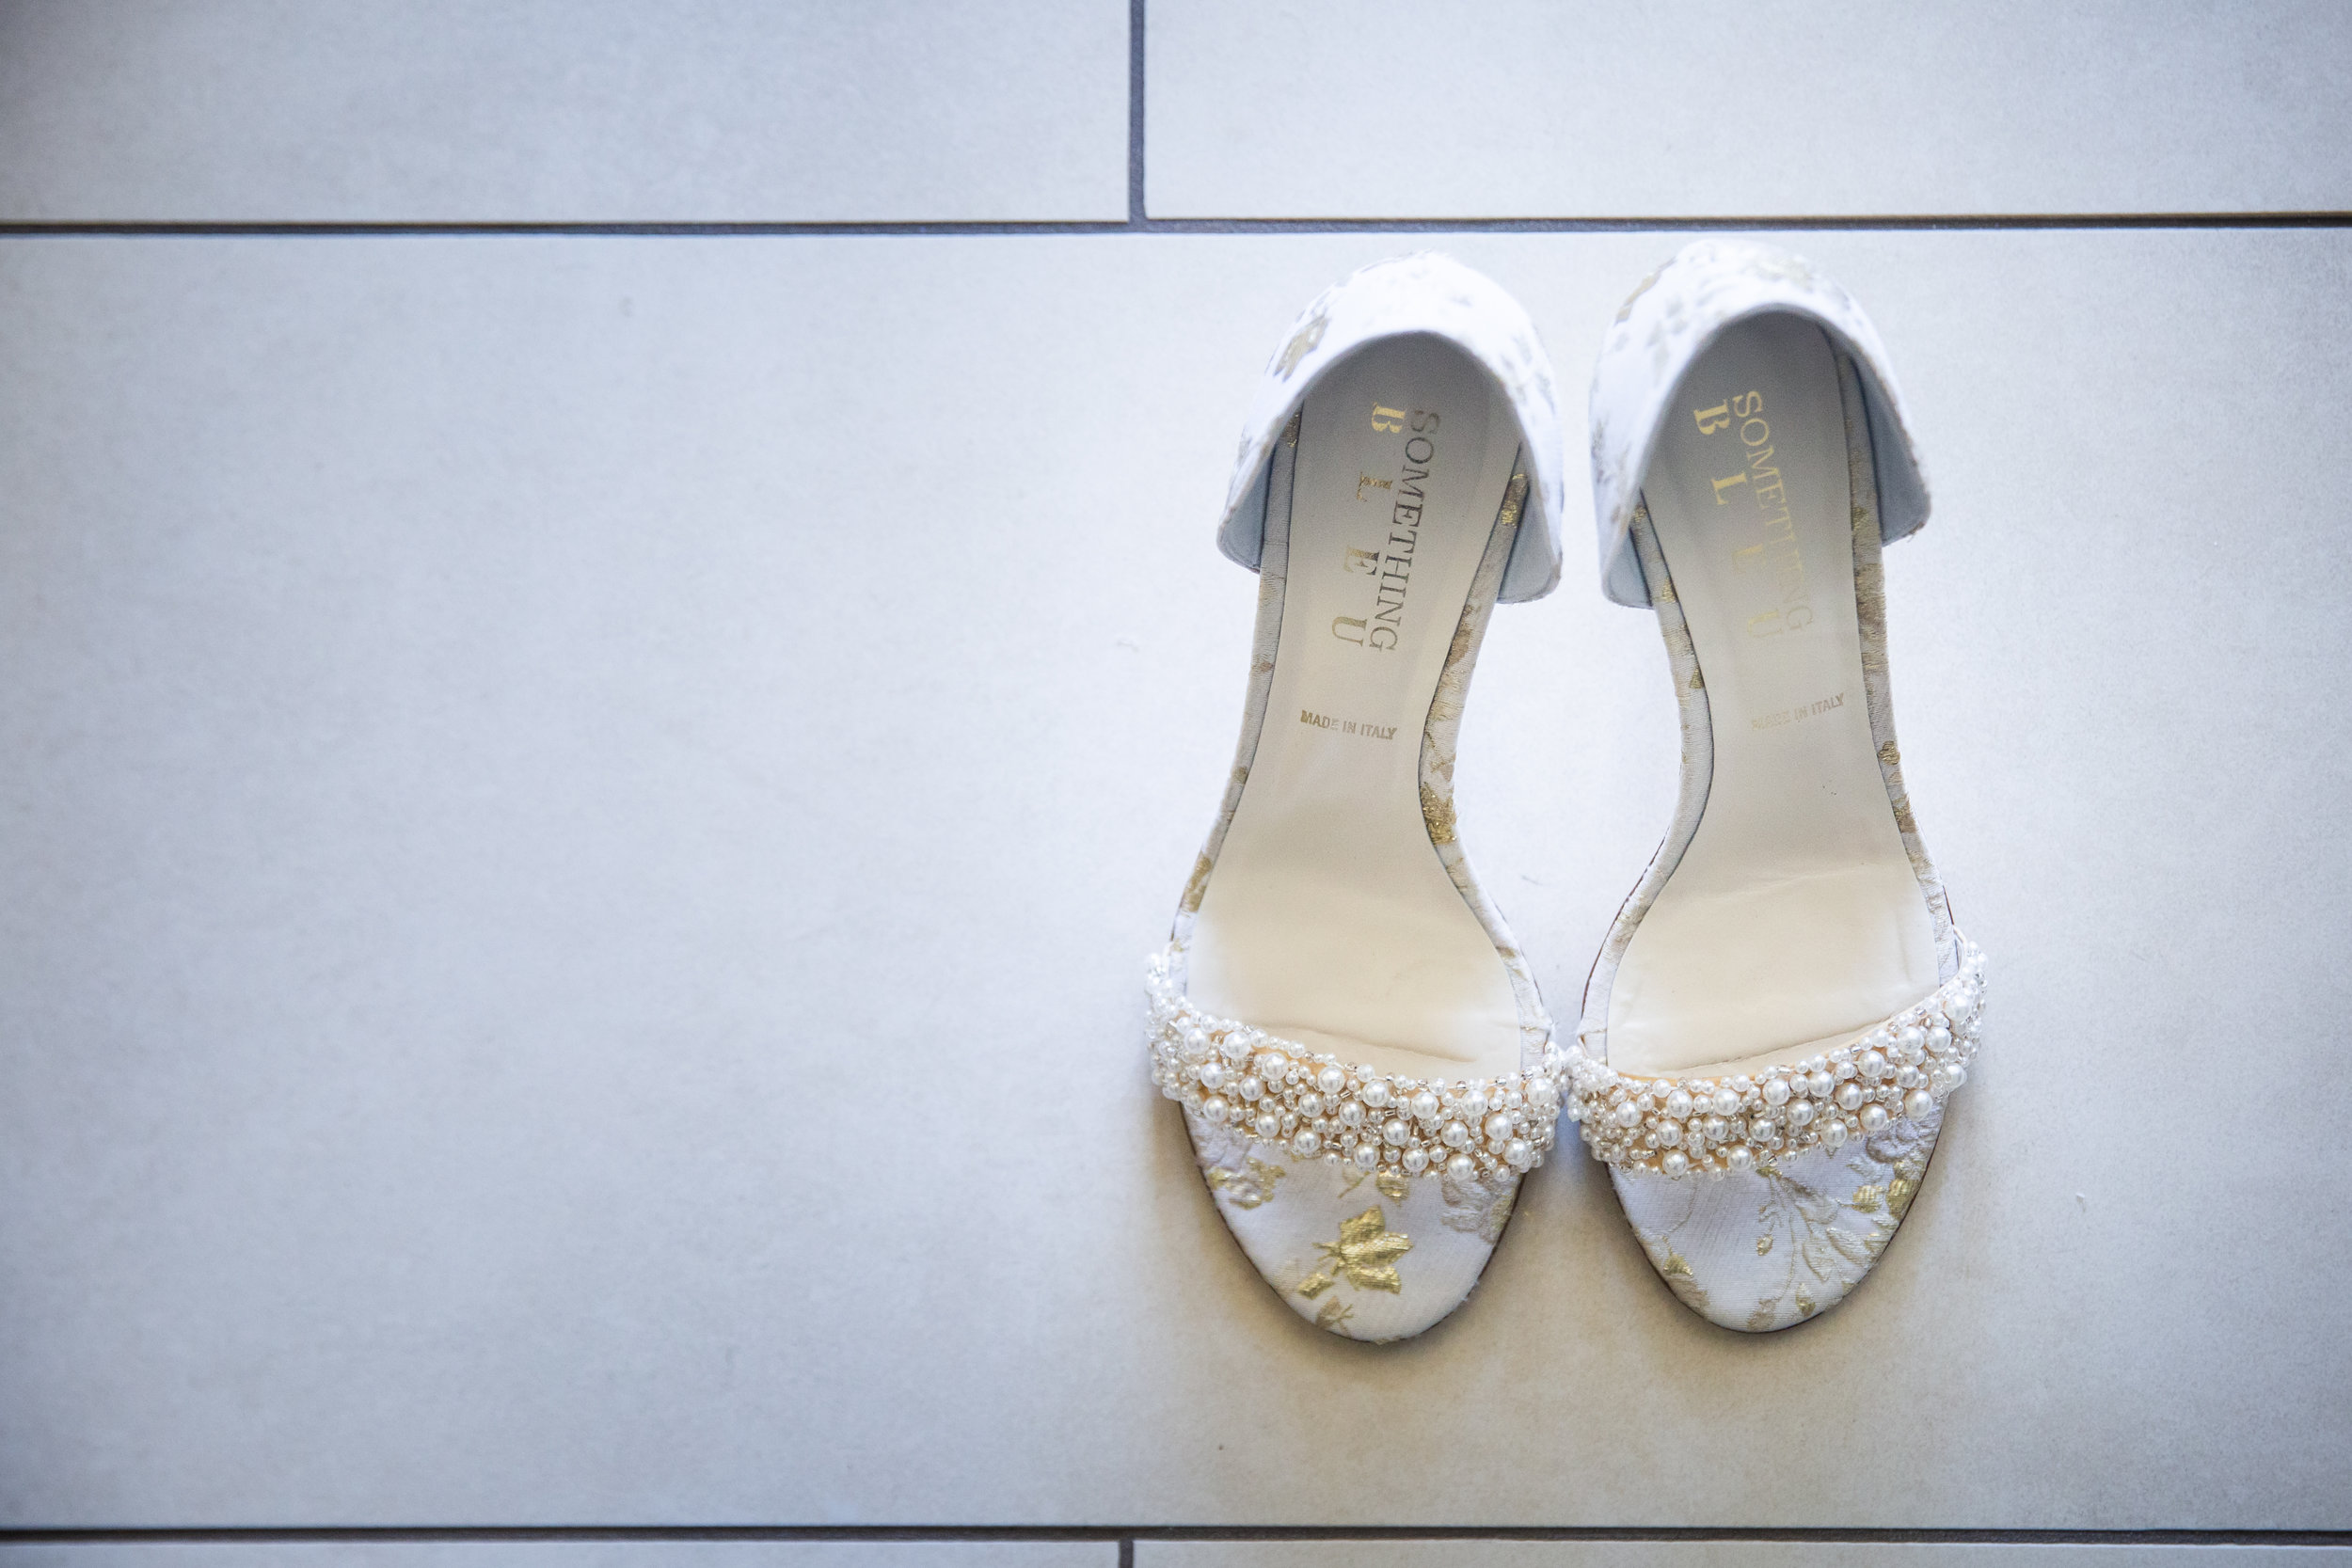 Brides Shoes with White pearls on tile floor.jpg